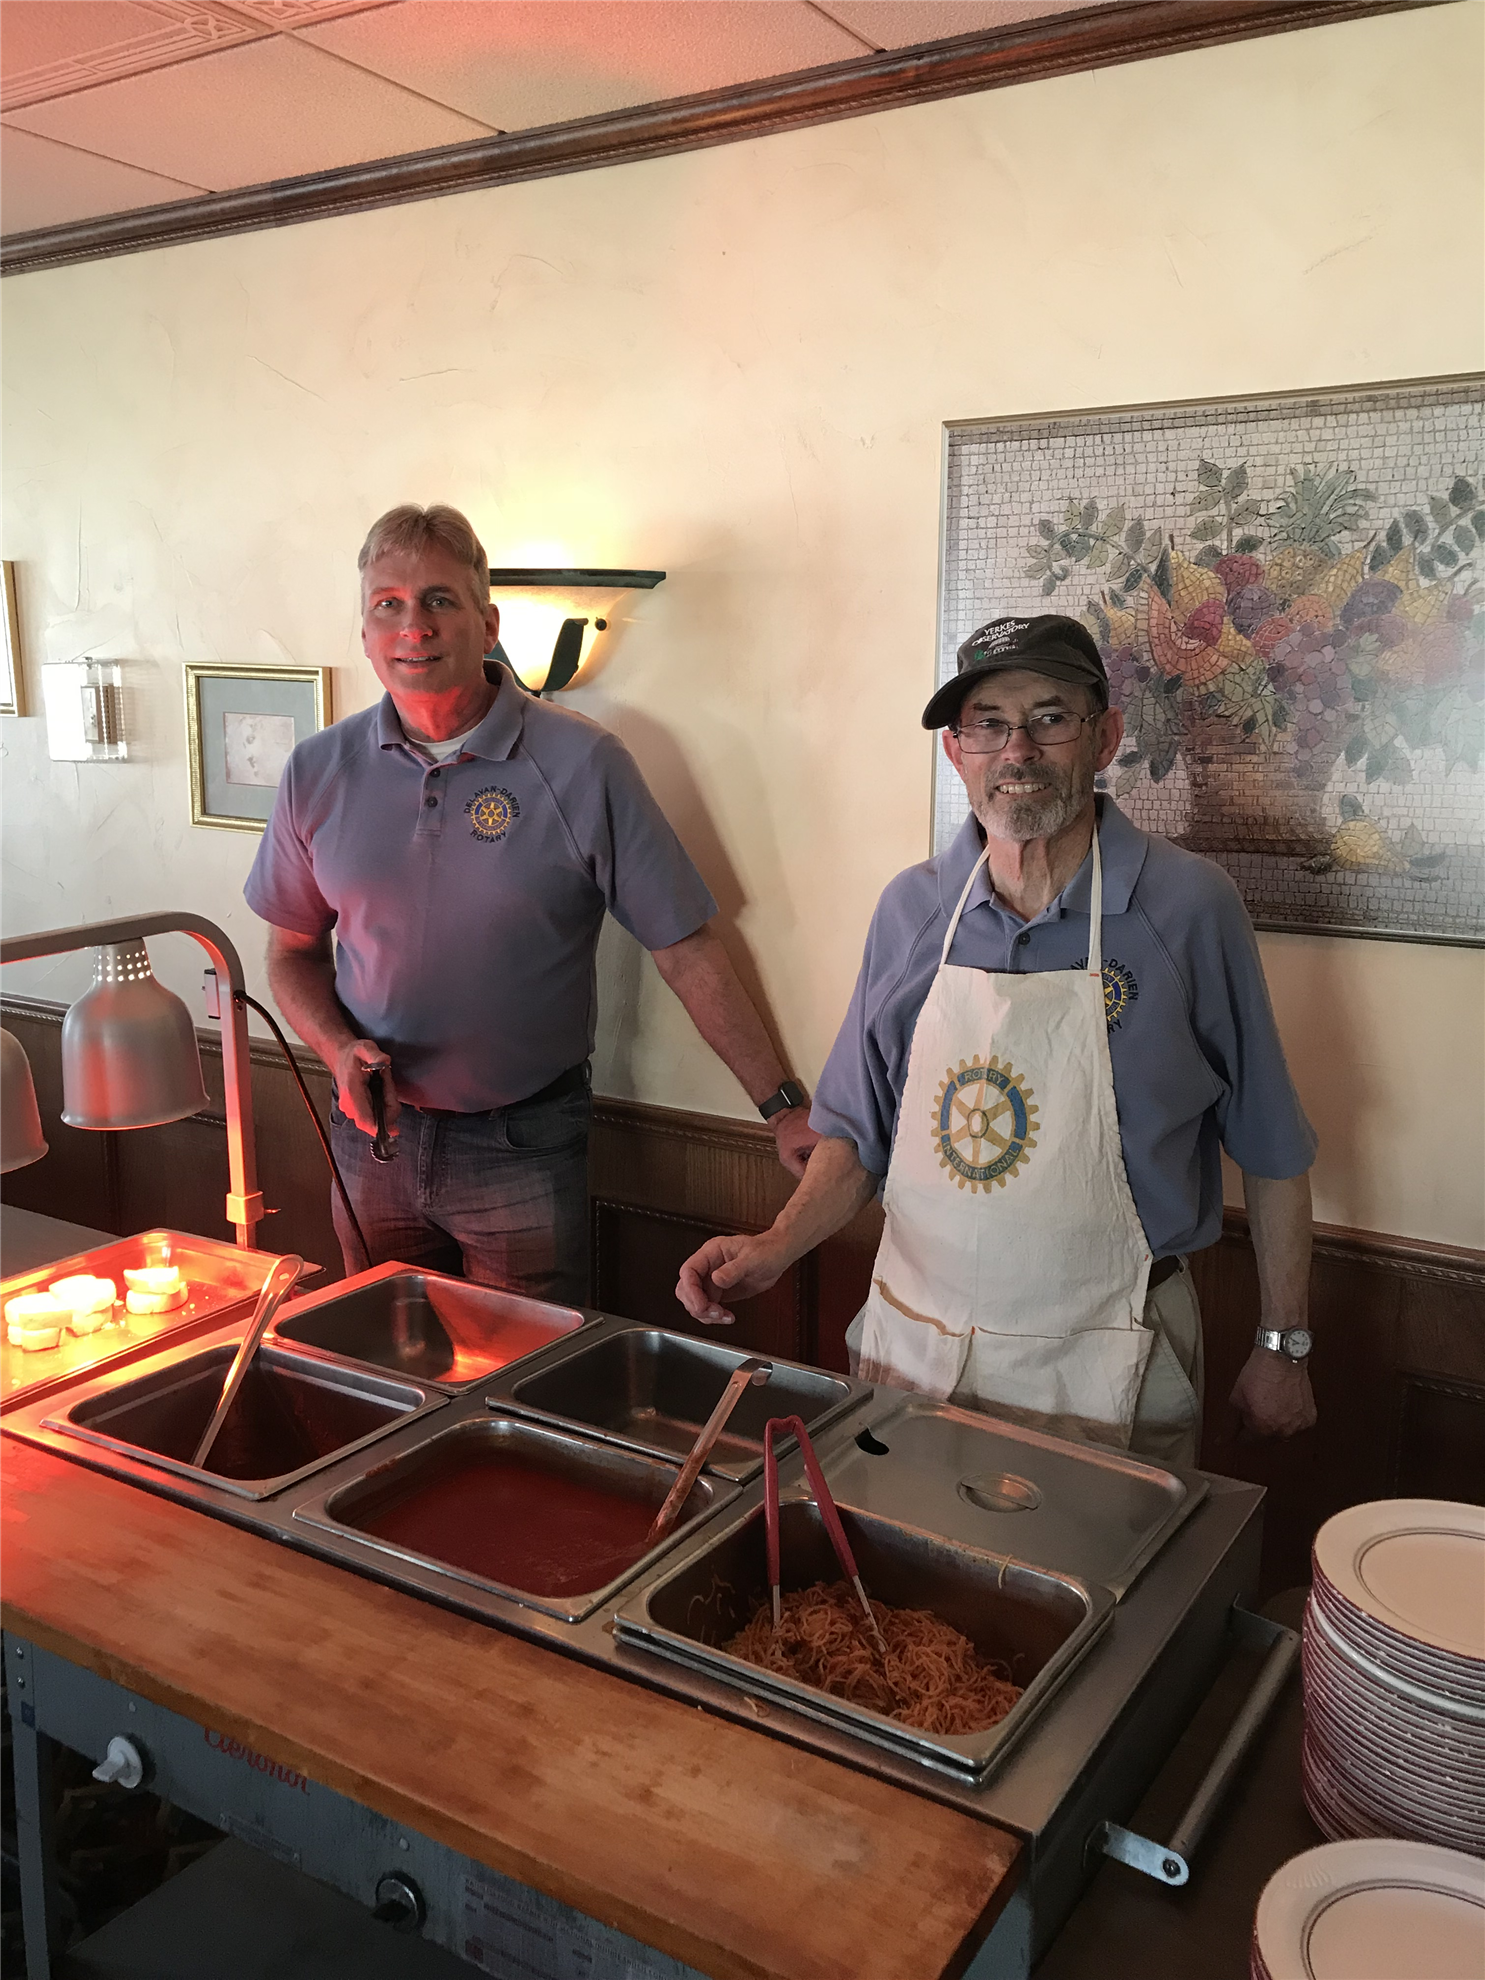 Stories rotary club of delavan darien as usual the food was outstanding and many diners enjoyed a great dinner many thanks to the cub scouts for their enthusiastic help fandeluxe Gallery